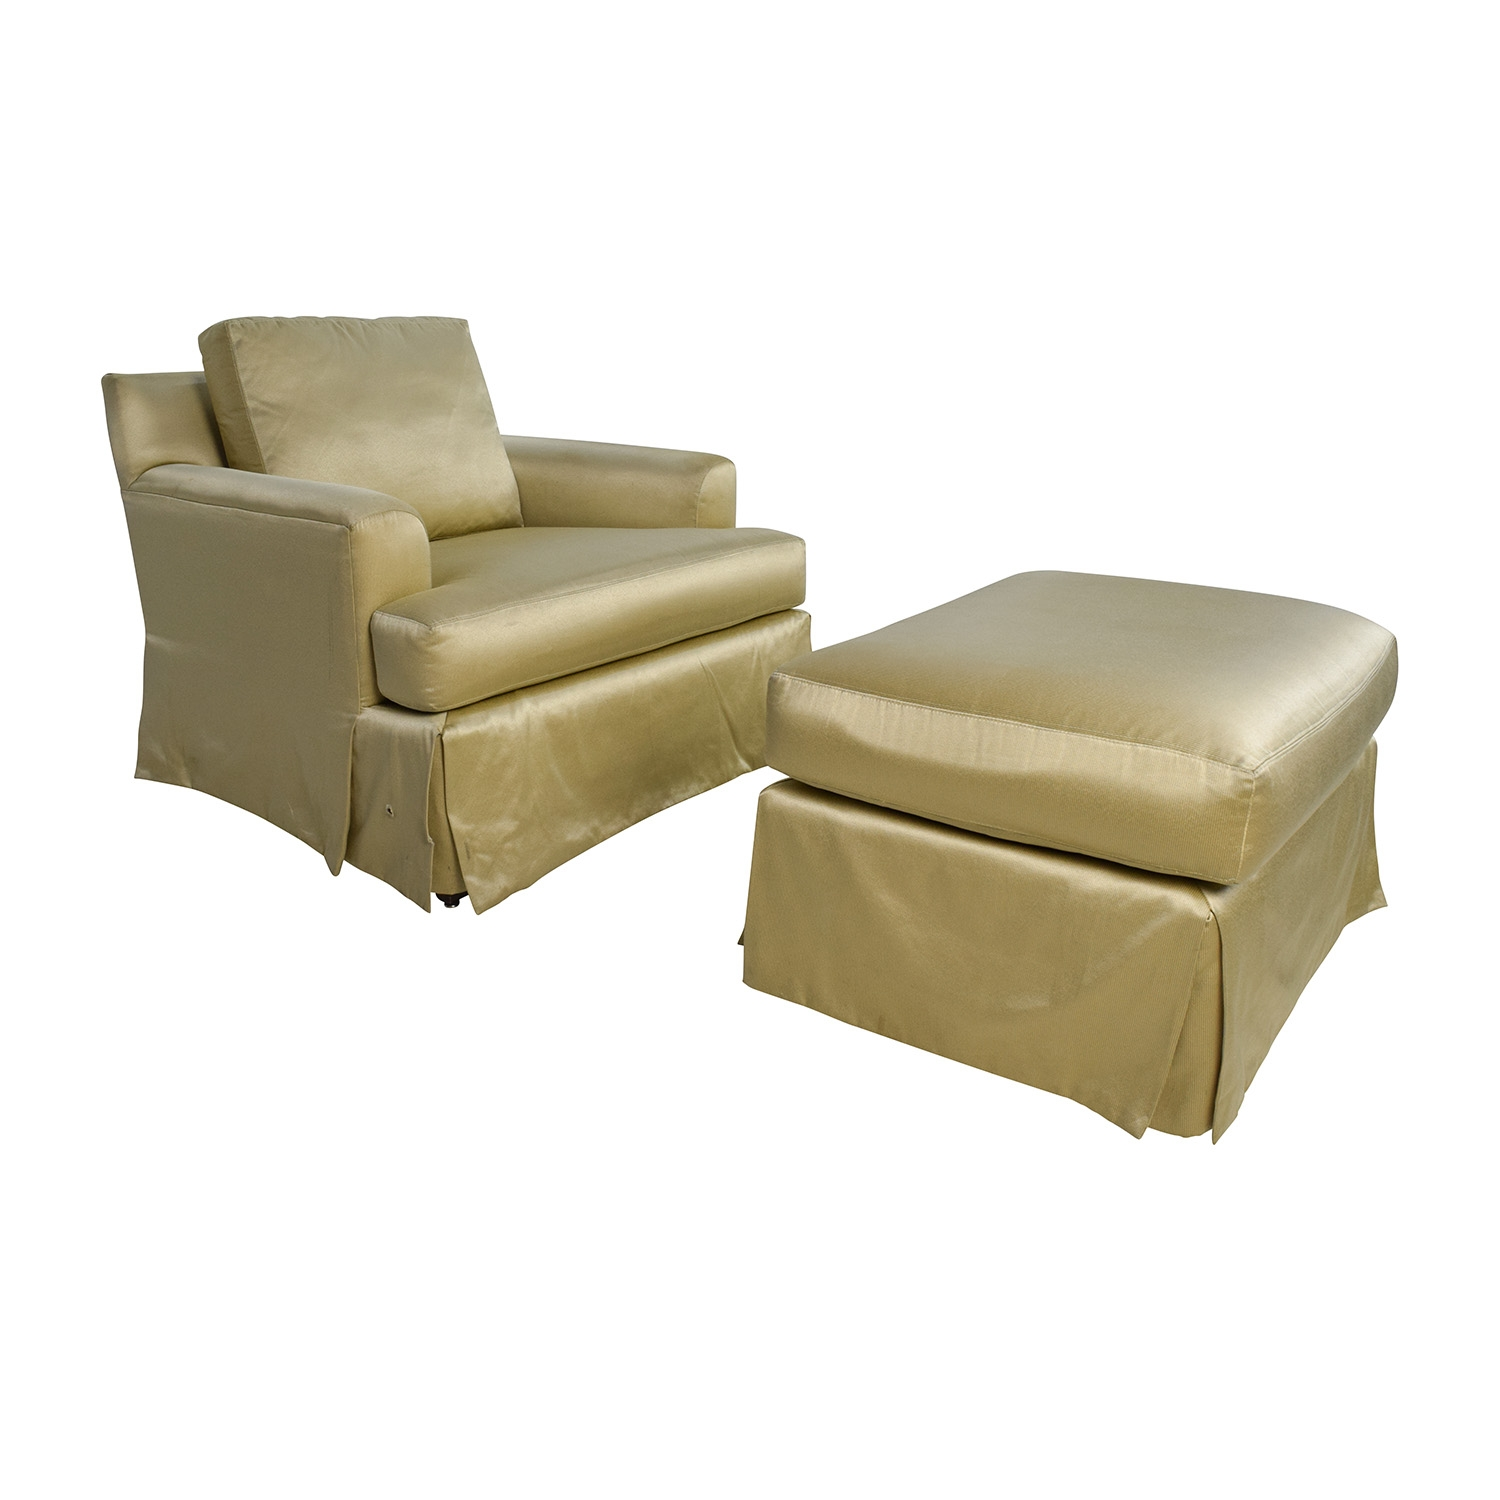 90 Off Abc Carpet And Home Abc Carpet Home Gold Sofa Chair Throughout Sofa Chair With Ottoman (Photo 15 of 15)